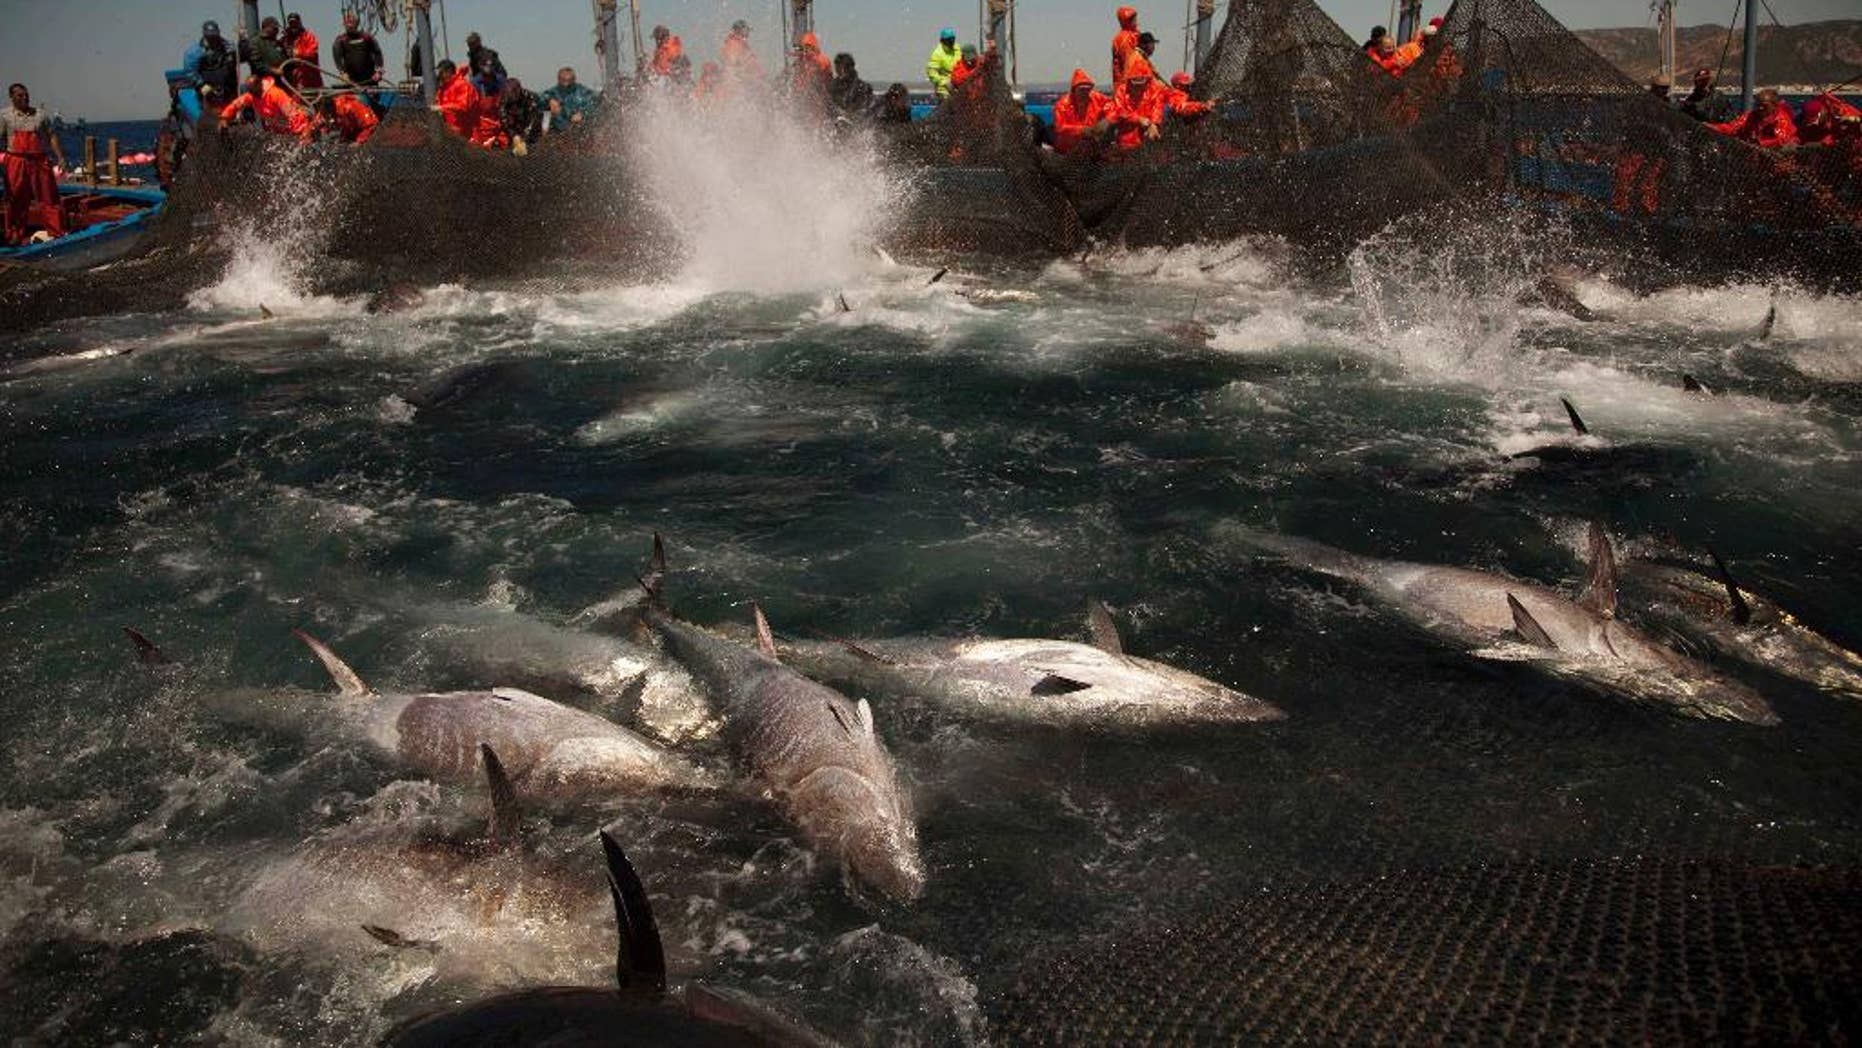 FILE - In this April 27, 2011 file photo, Atlantic bluefin tuna are corralled by fishing nets during the opening of the season for tuna fishing off the coast of Barbate, Cadiz province, southern Spain.  Documents revealed on Friday, Feb. 27, 2015, show that Turkey is planning to catch up to 73 percent more Bluefin tuna than under an internationally agreed plan to limit the Atlantic Tuna catch.  During an intense meeting of the International Commission for the Conservation of Atlantic Tunas, the European Union, Japan and others nations were angry at Turkey for announcing its unilateral intention to increase their own quotas. (AP Photo/Emilio Morenatti, File)